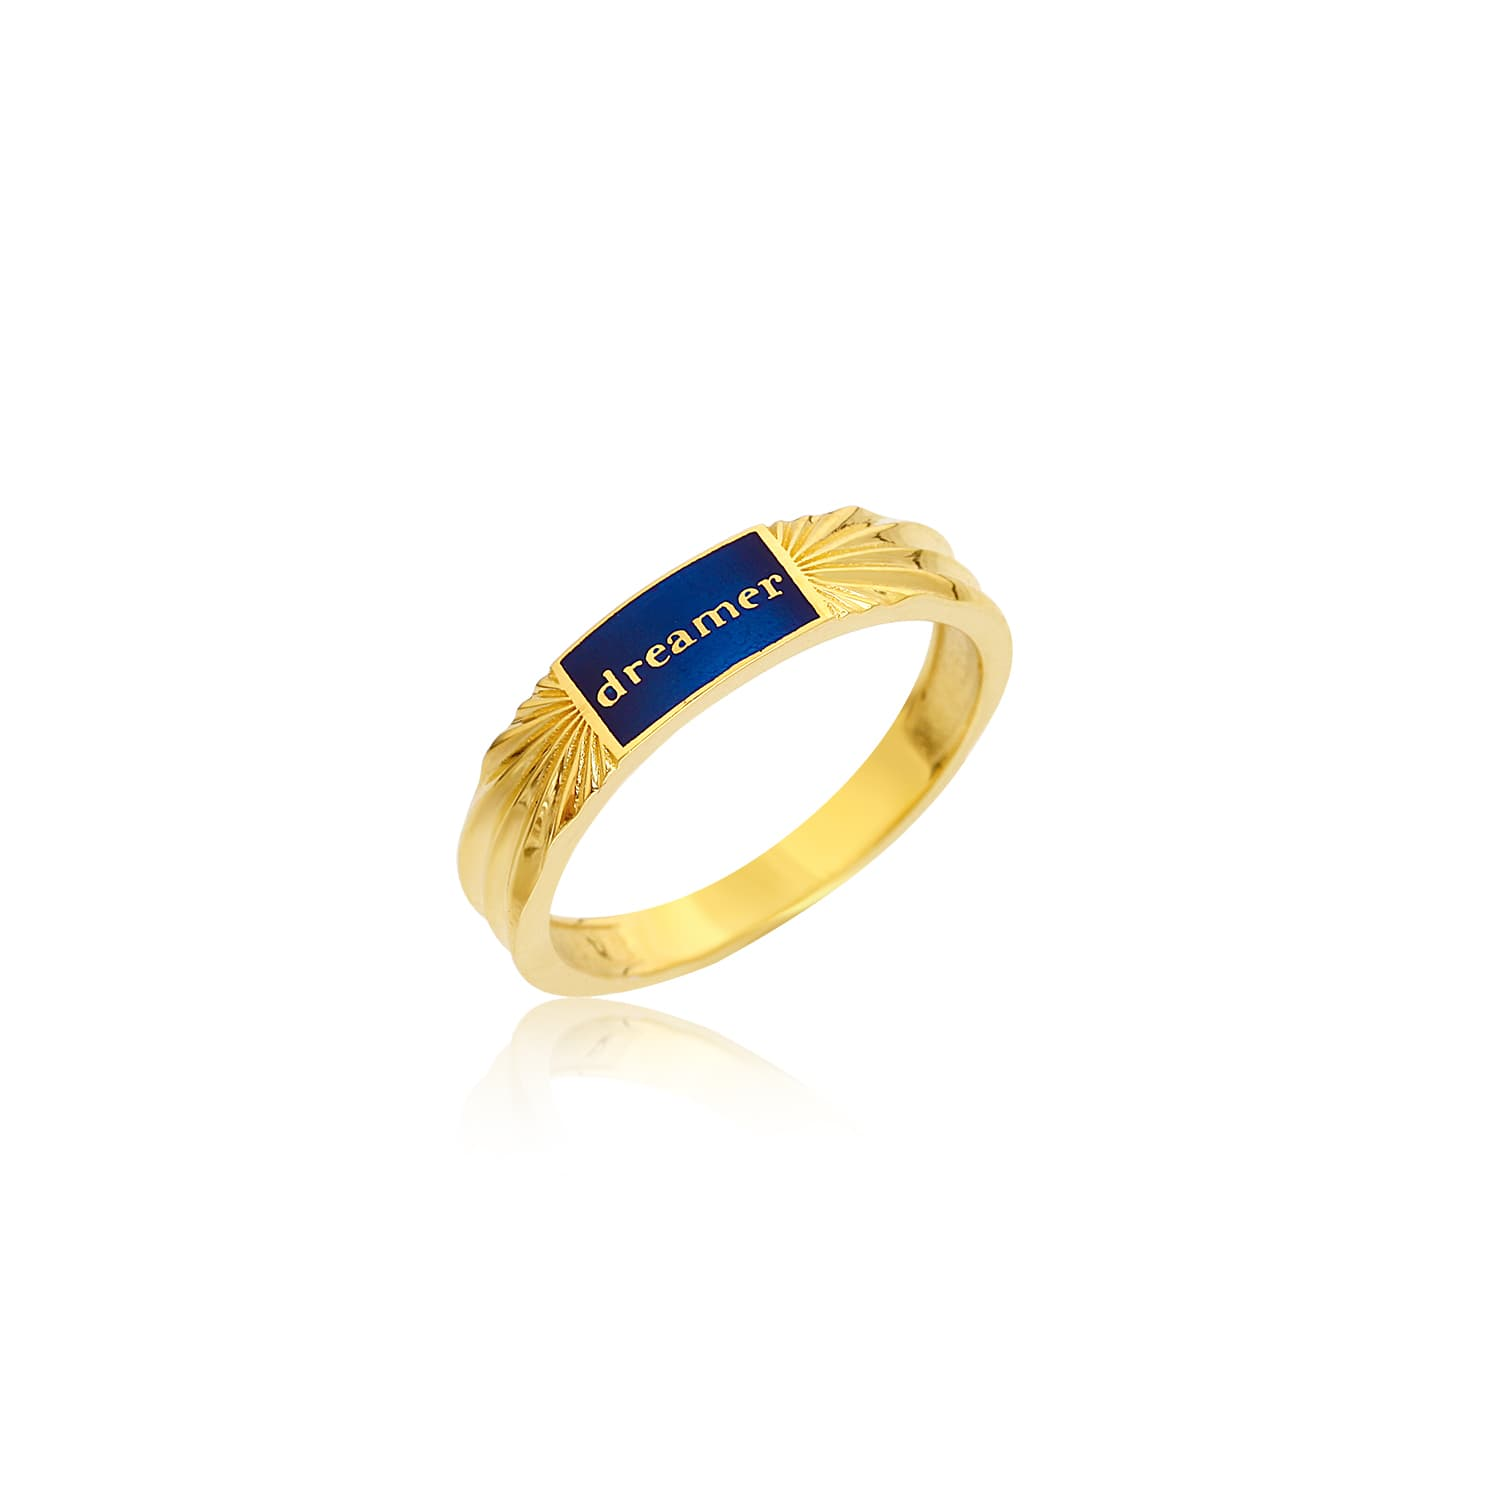 Navy blue enamel ring with gold plated dreamer writing on silver